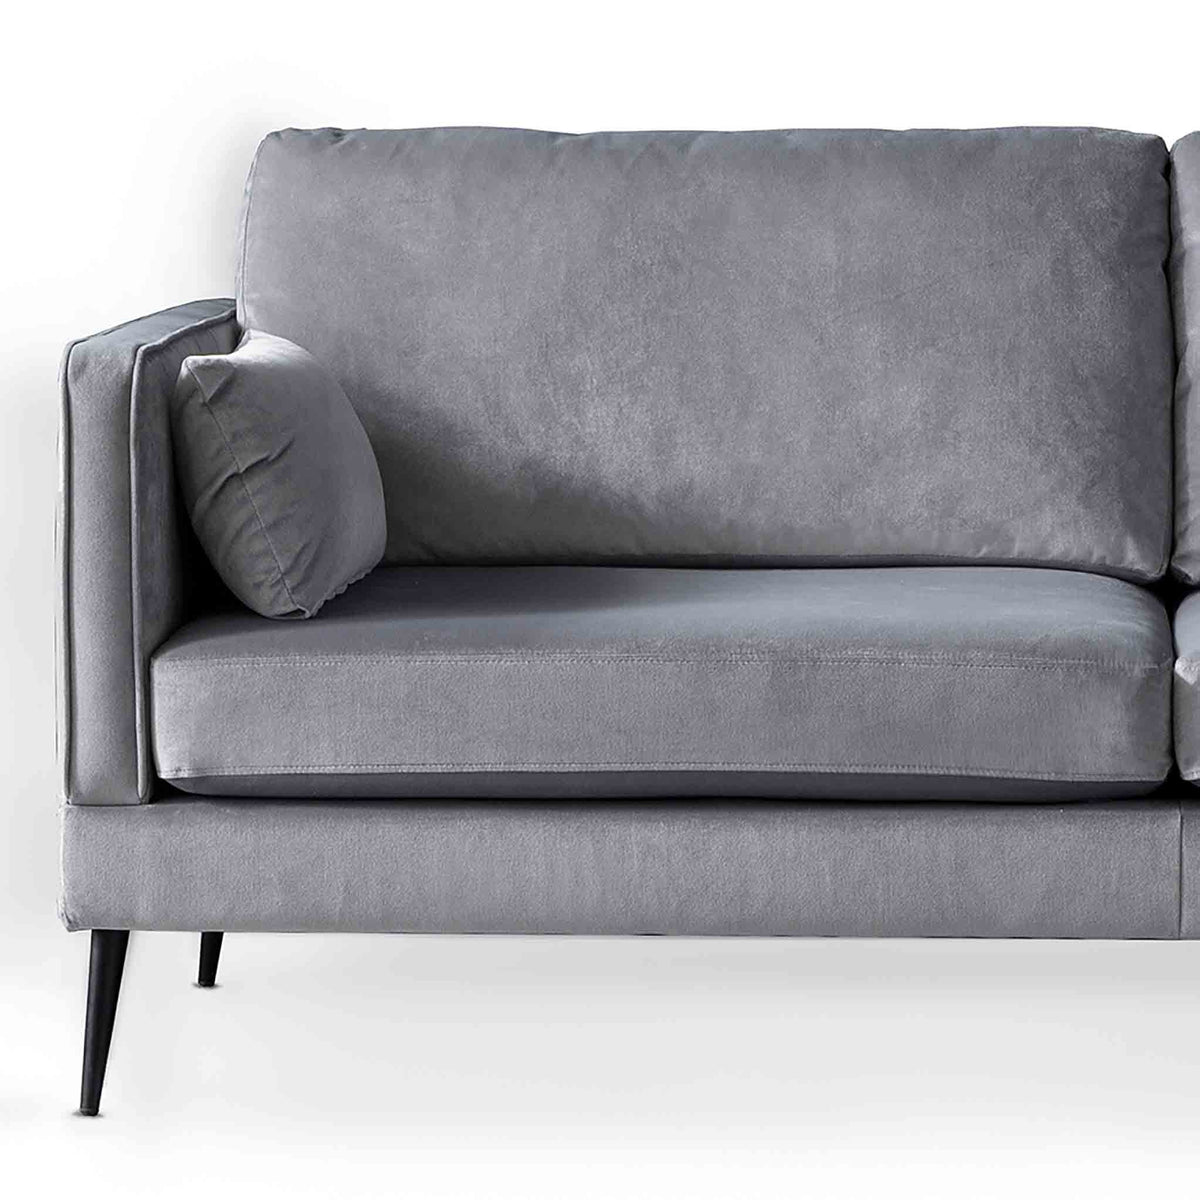 Anton Grey 3 Seater Sofa - Close up of sofa